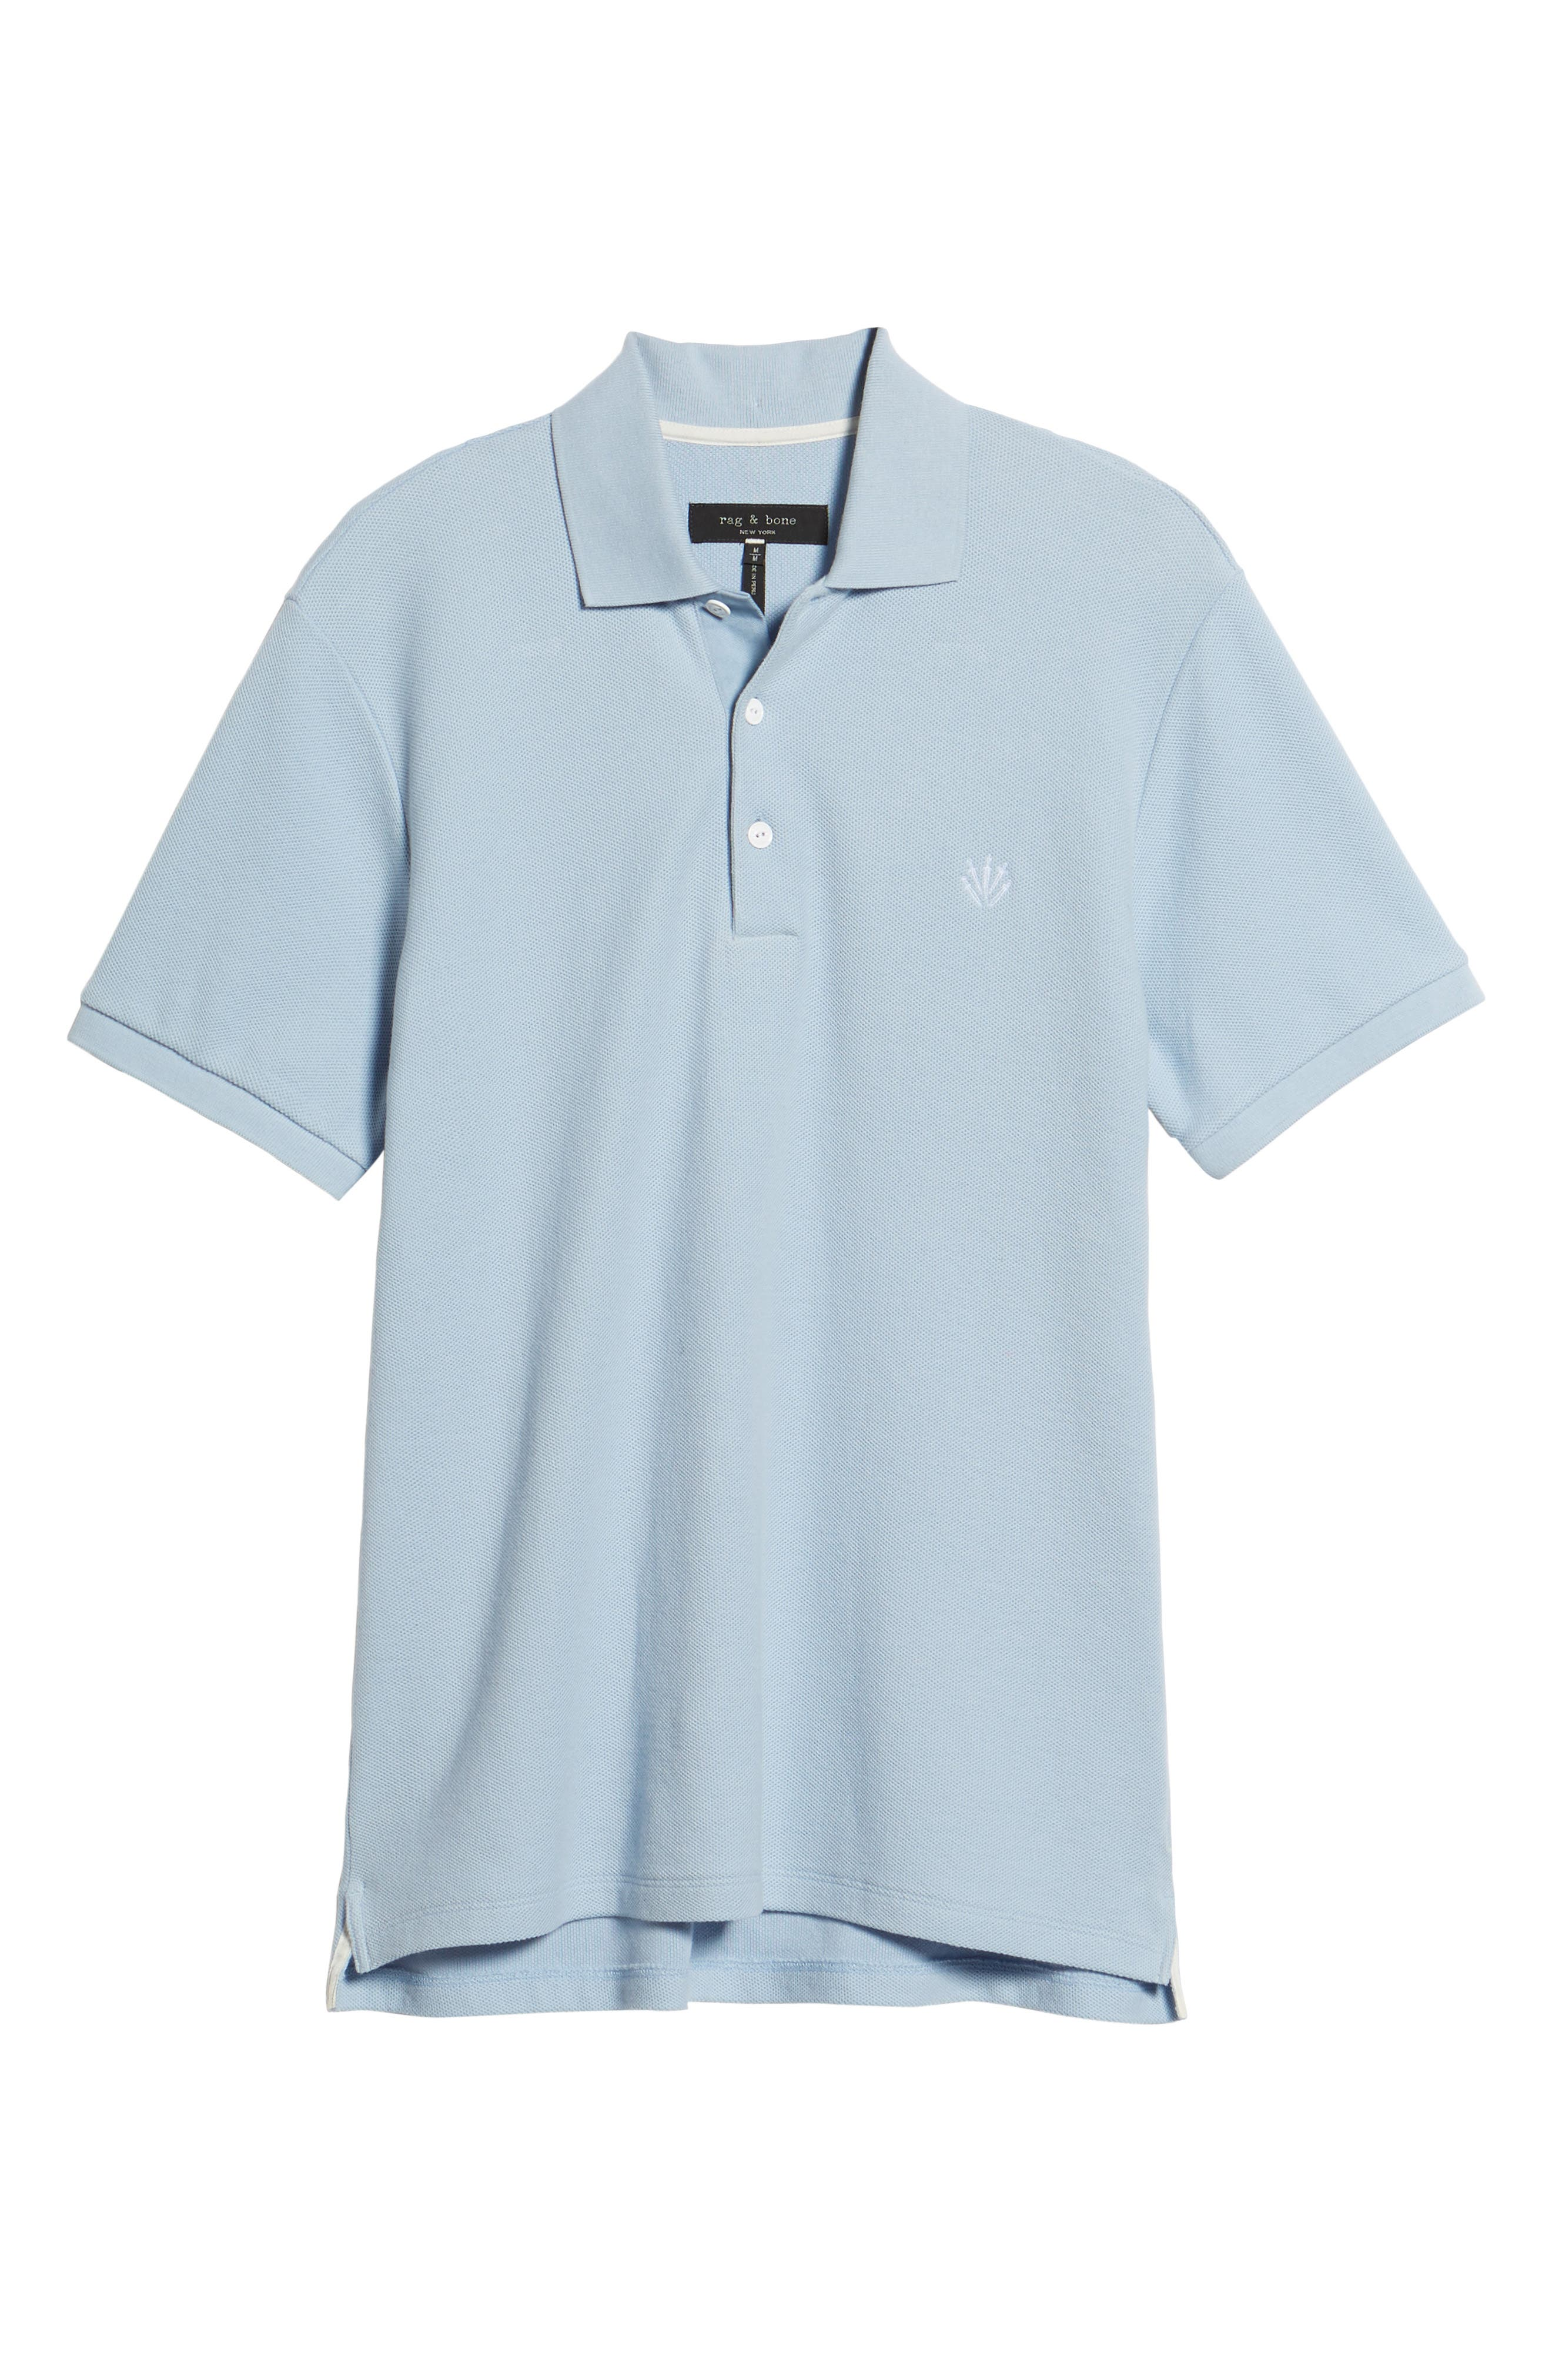 Regular Fit Polo,                             Alternate thumbnail 6, color,                             PALE PERWNKL